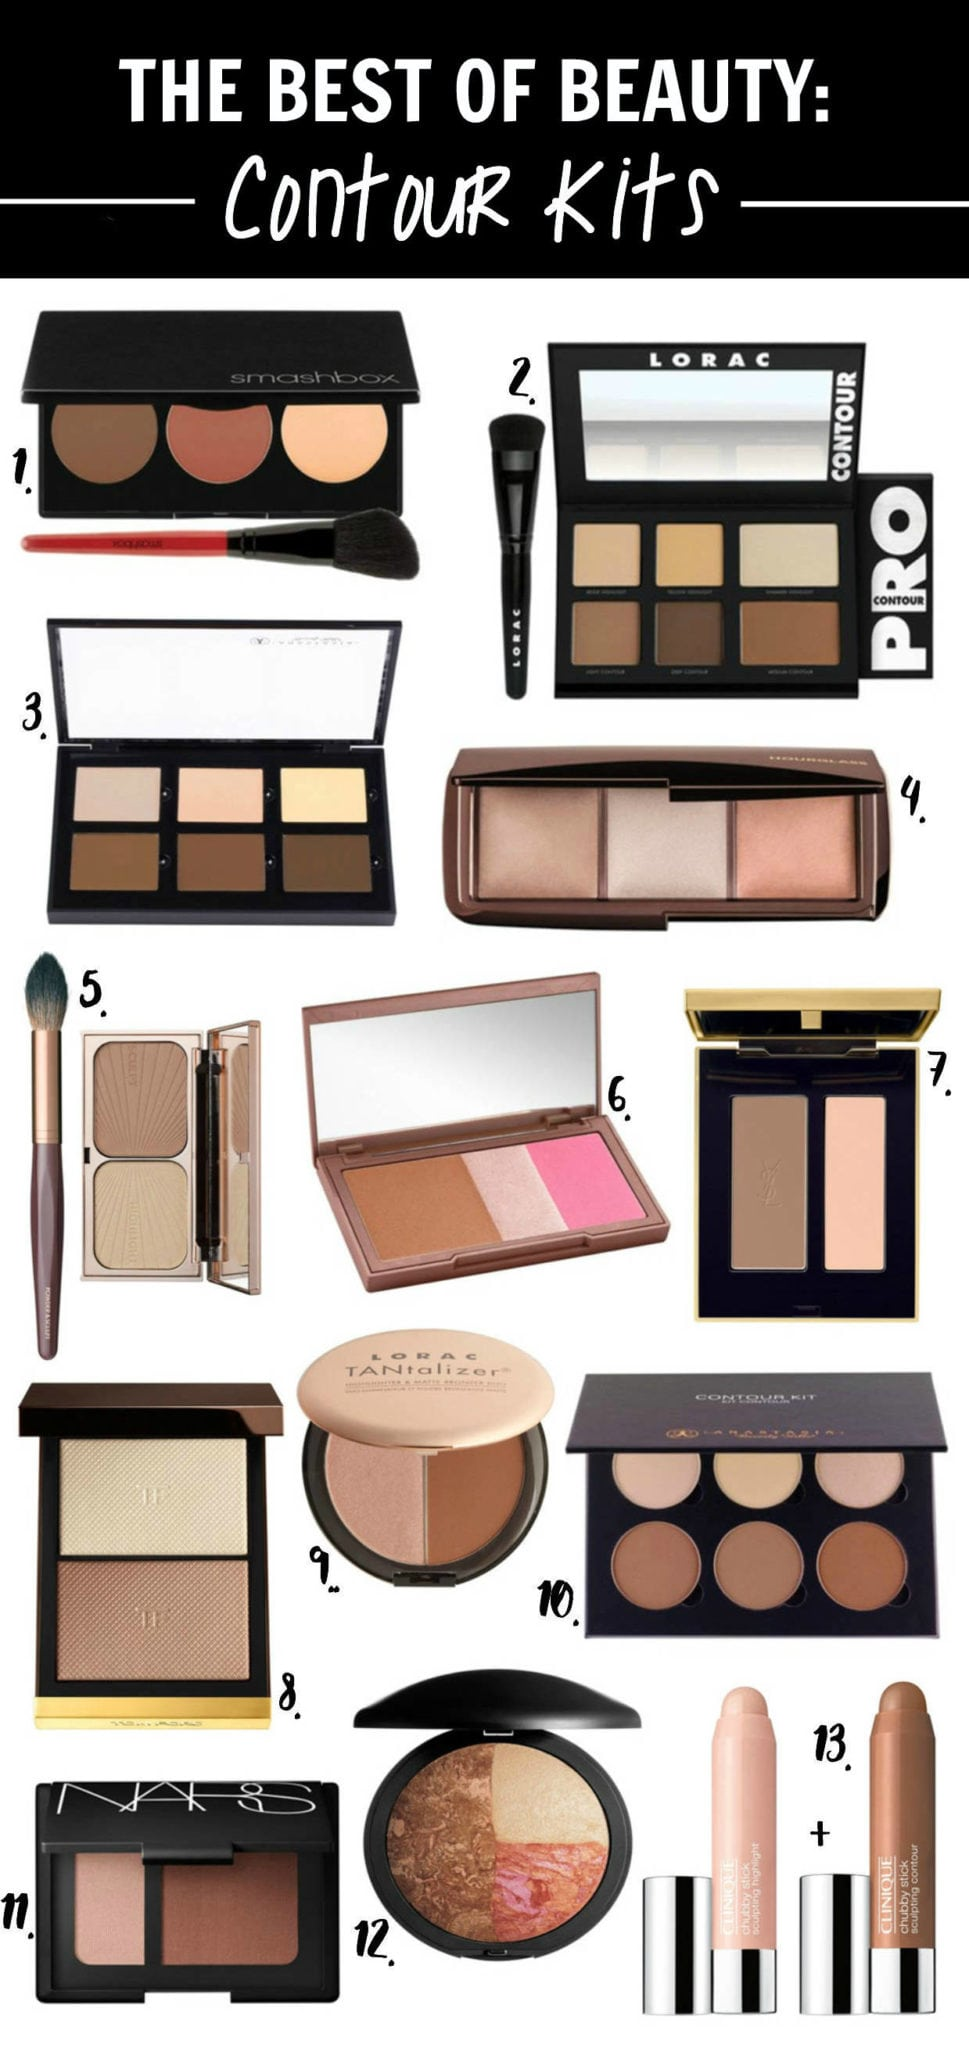 The Best Contour Kits Beauty Makeup